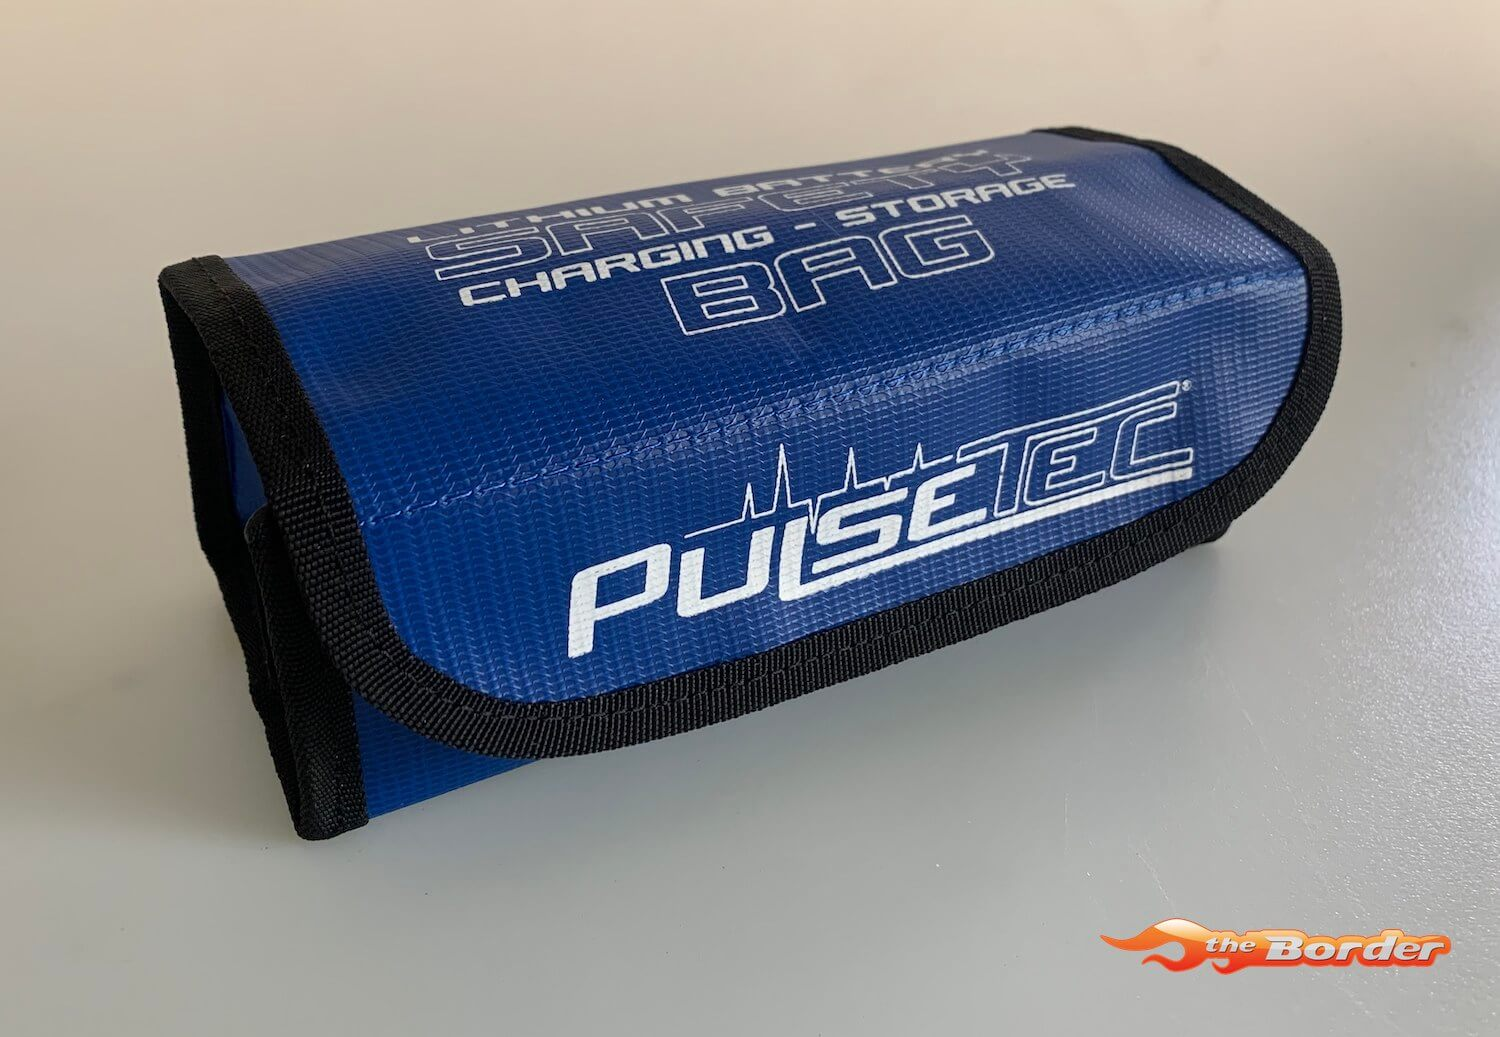 PulseTec Lithium Battery Safety Bag for Charging & Storage 19x7.5x8cm PC-010-002